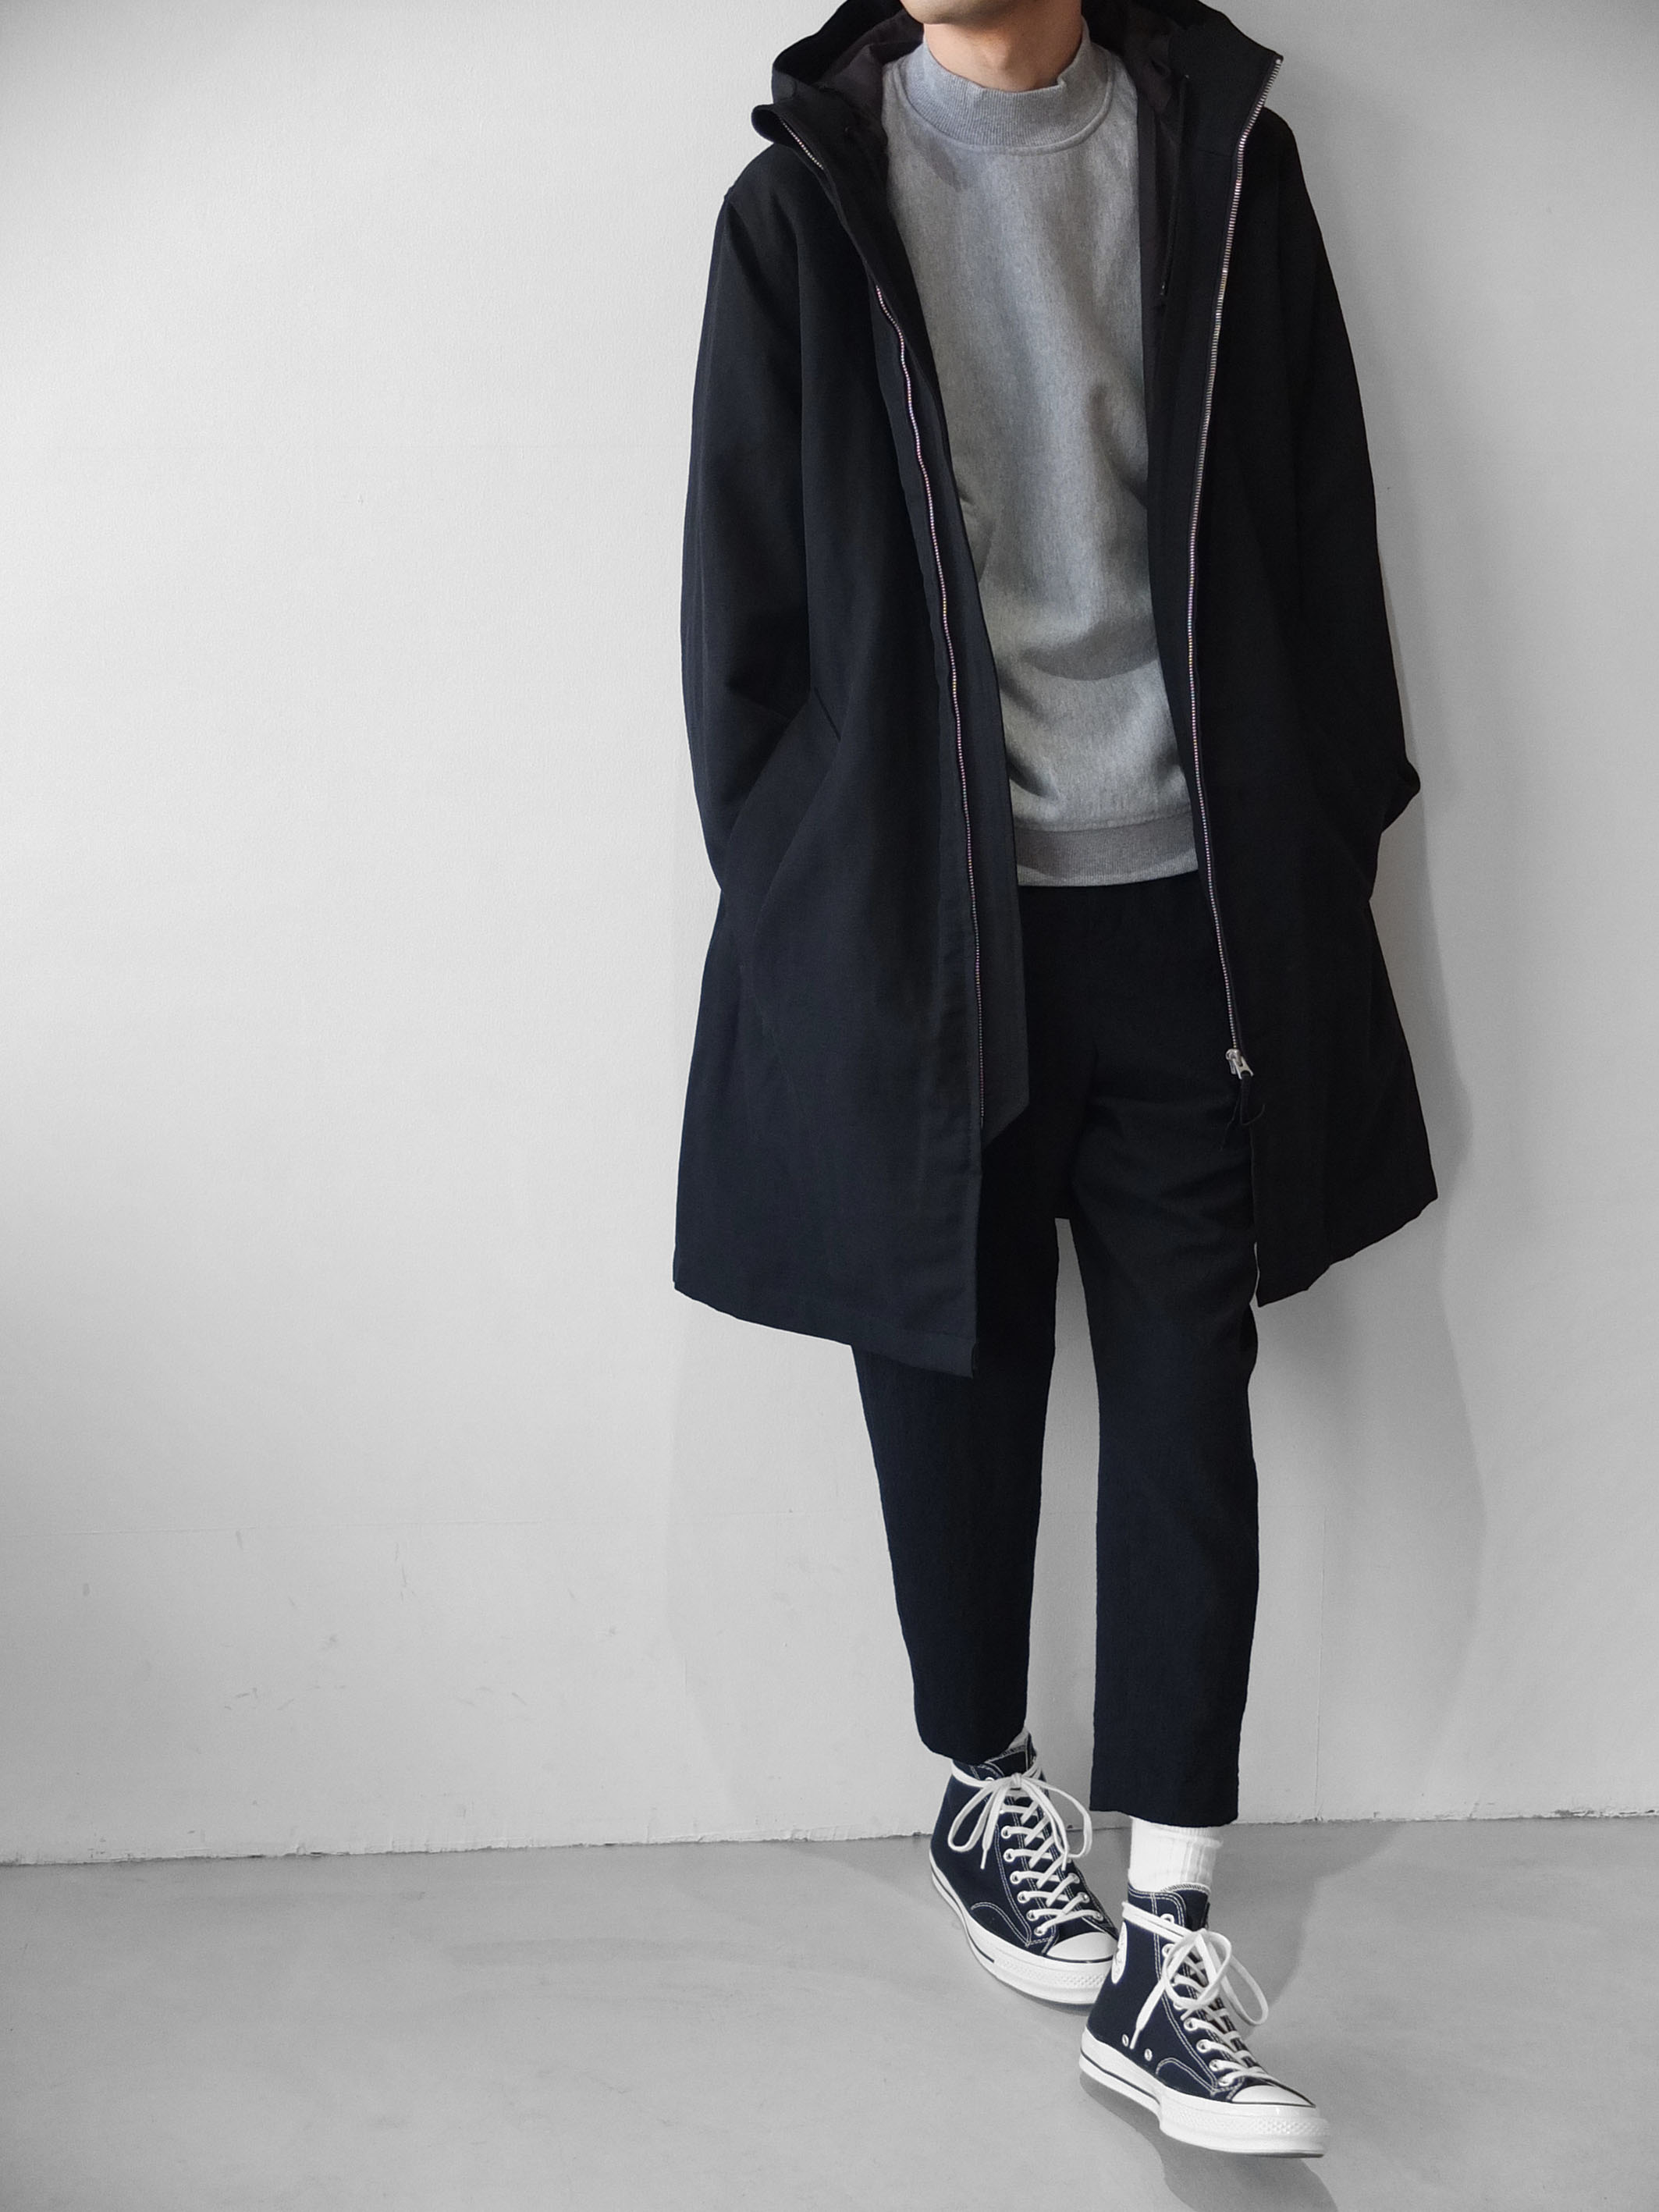 style_sample_48_a